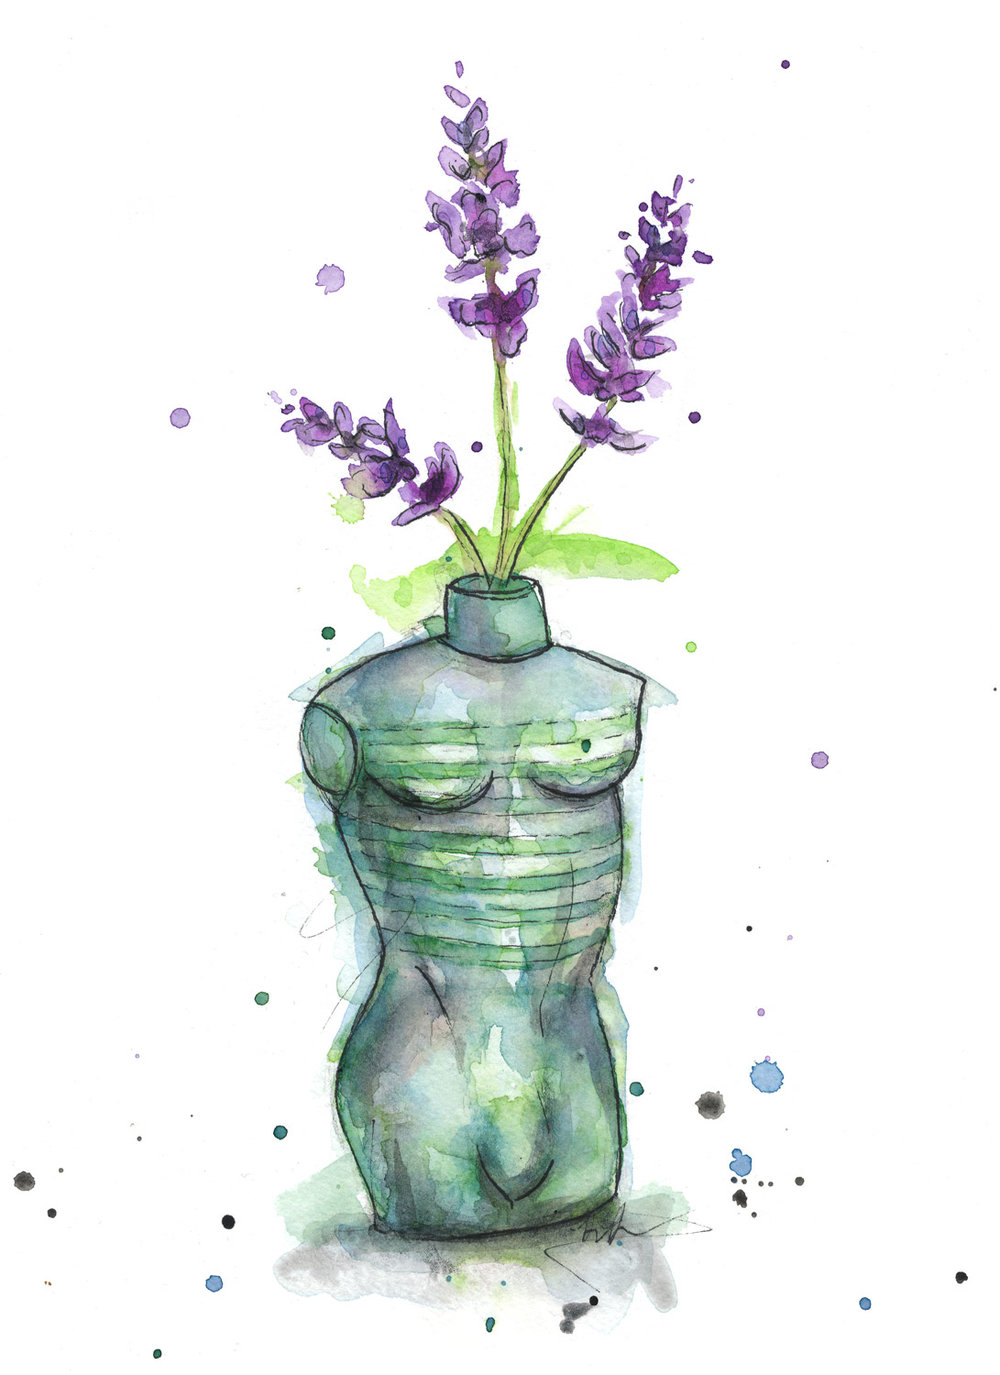 Benjamin-Edward-Jean-Paul-Gaultier-Le-Male-Lavender-Flower-watercolour-illustration.jpg